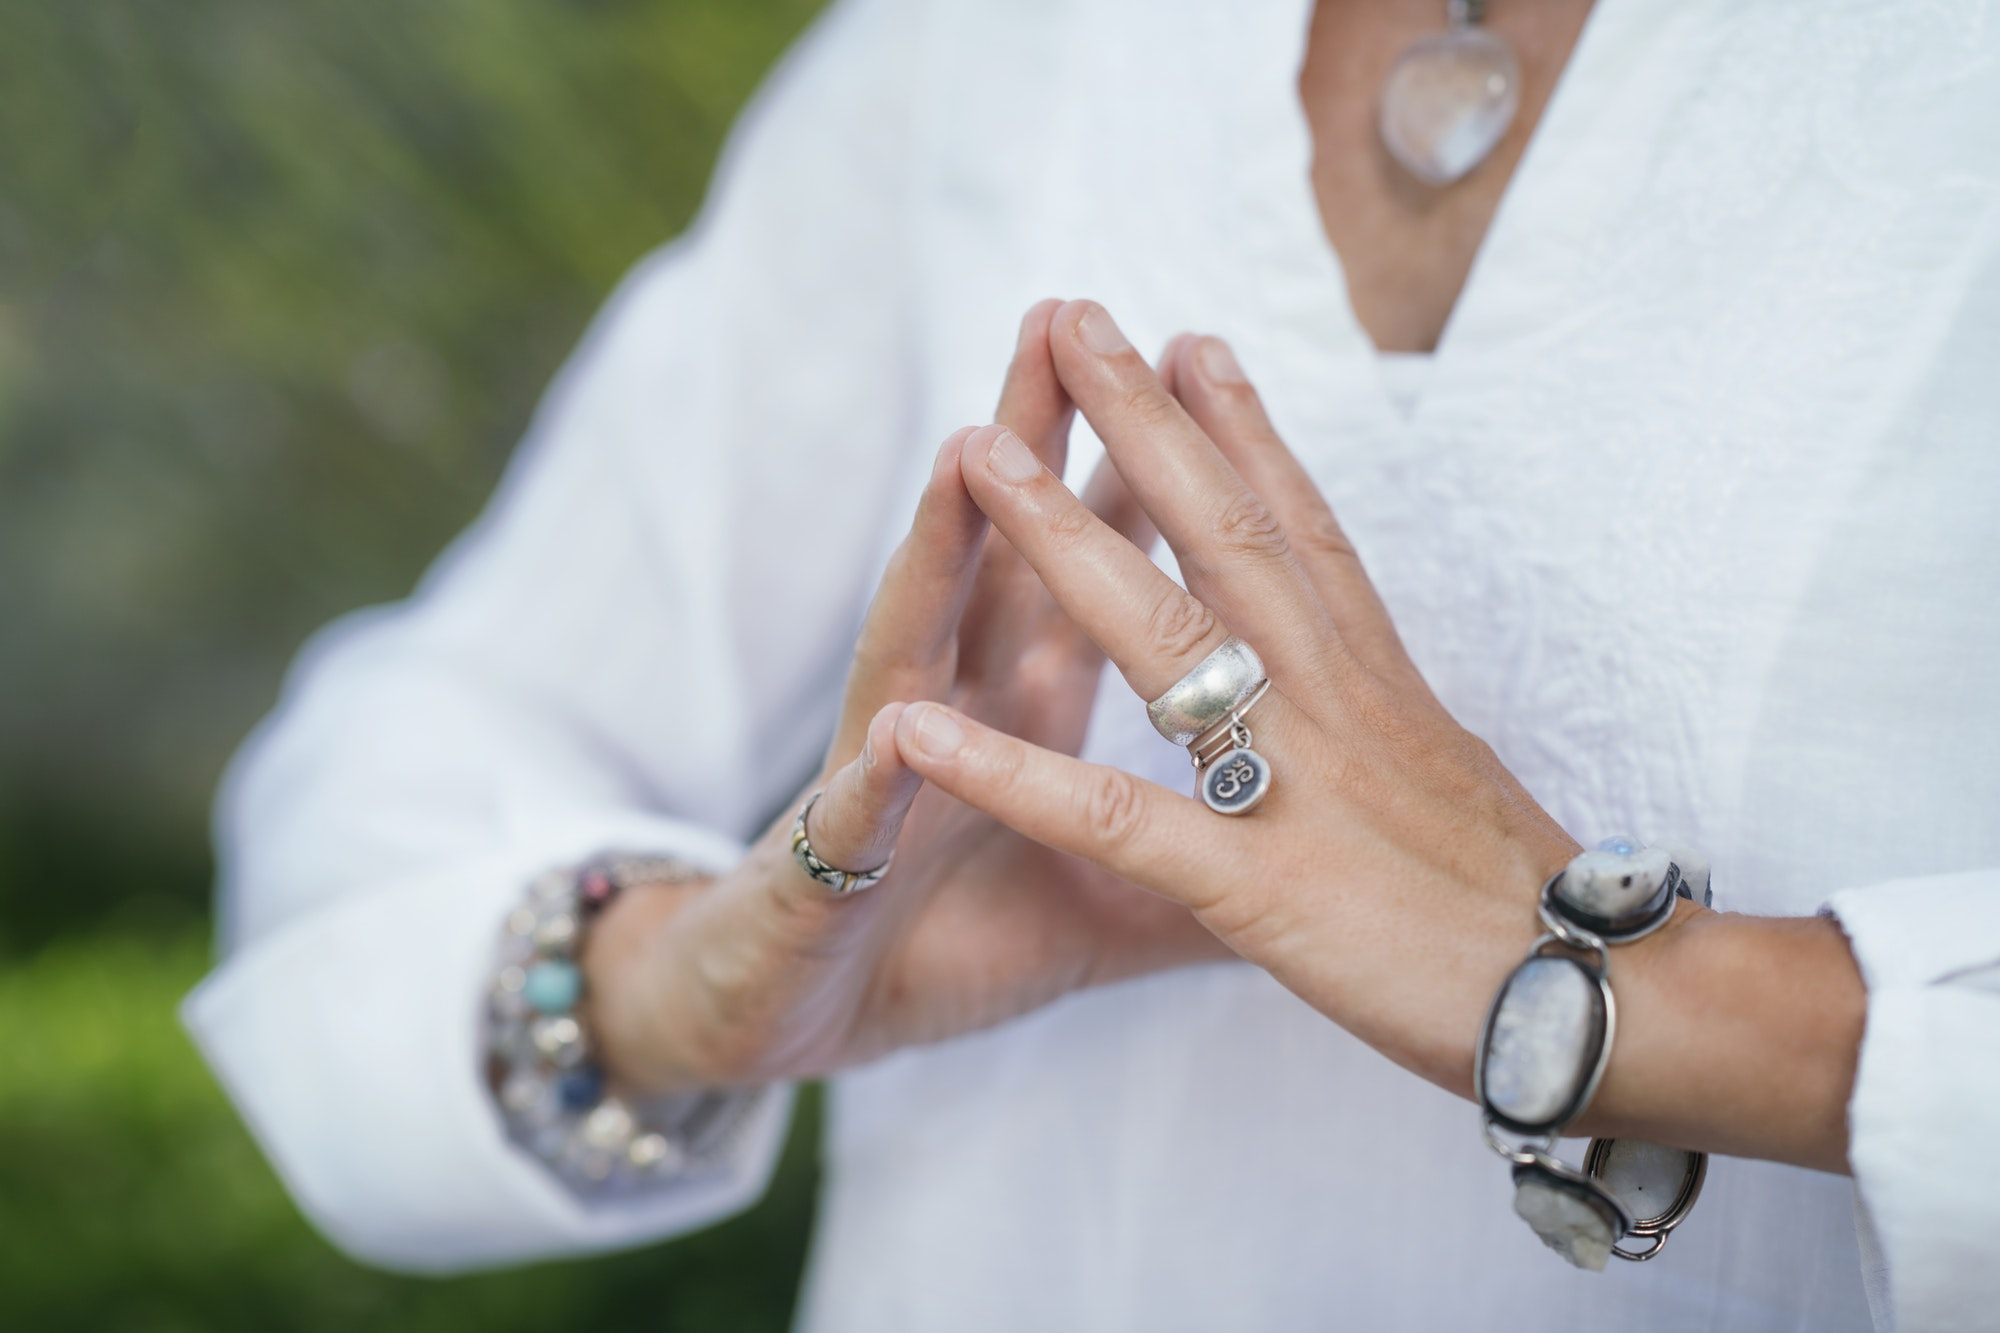 Centering Exercises, Self-Care Wellbeing Practice